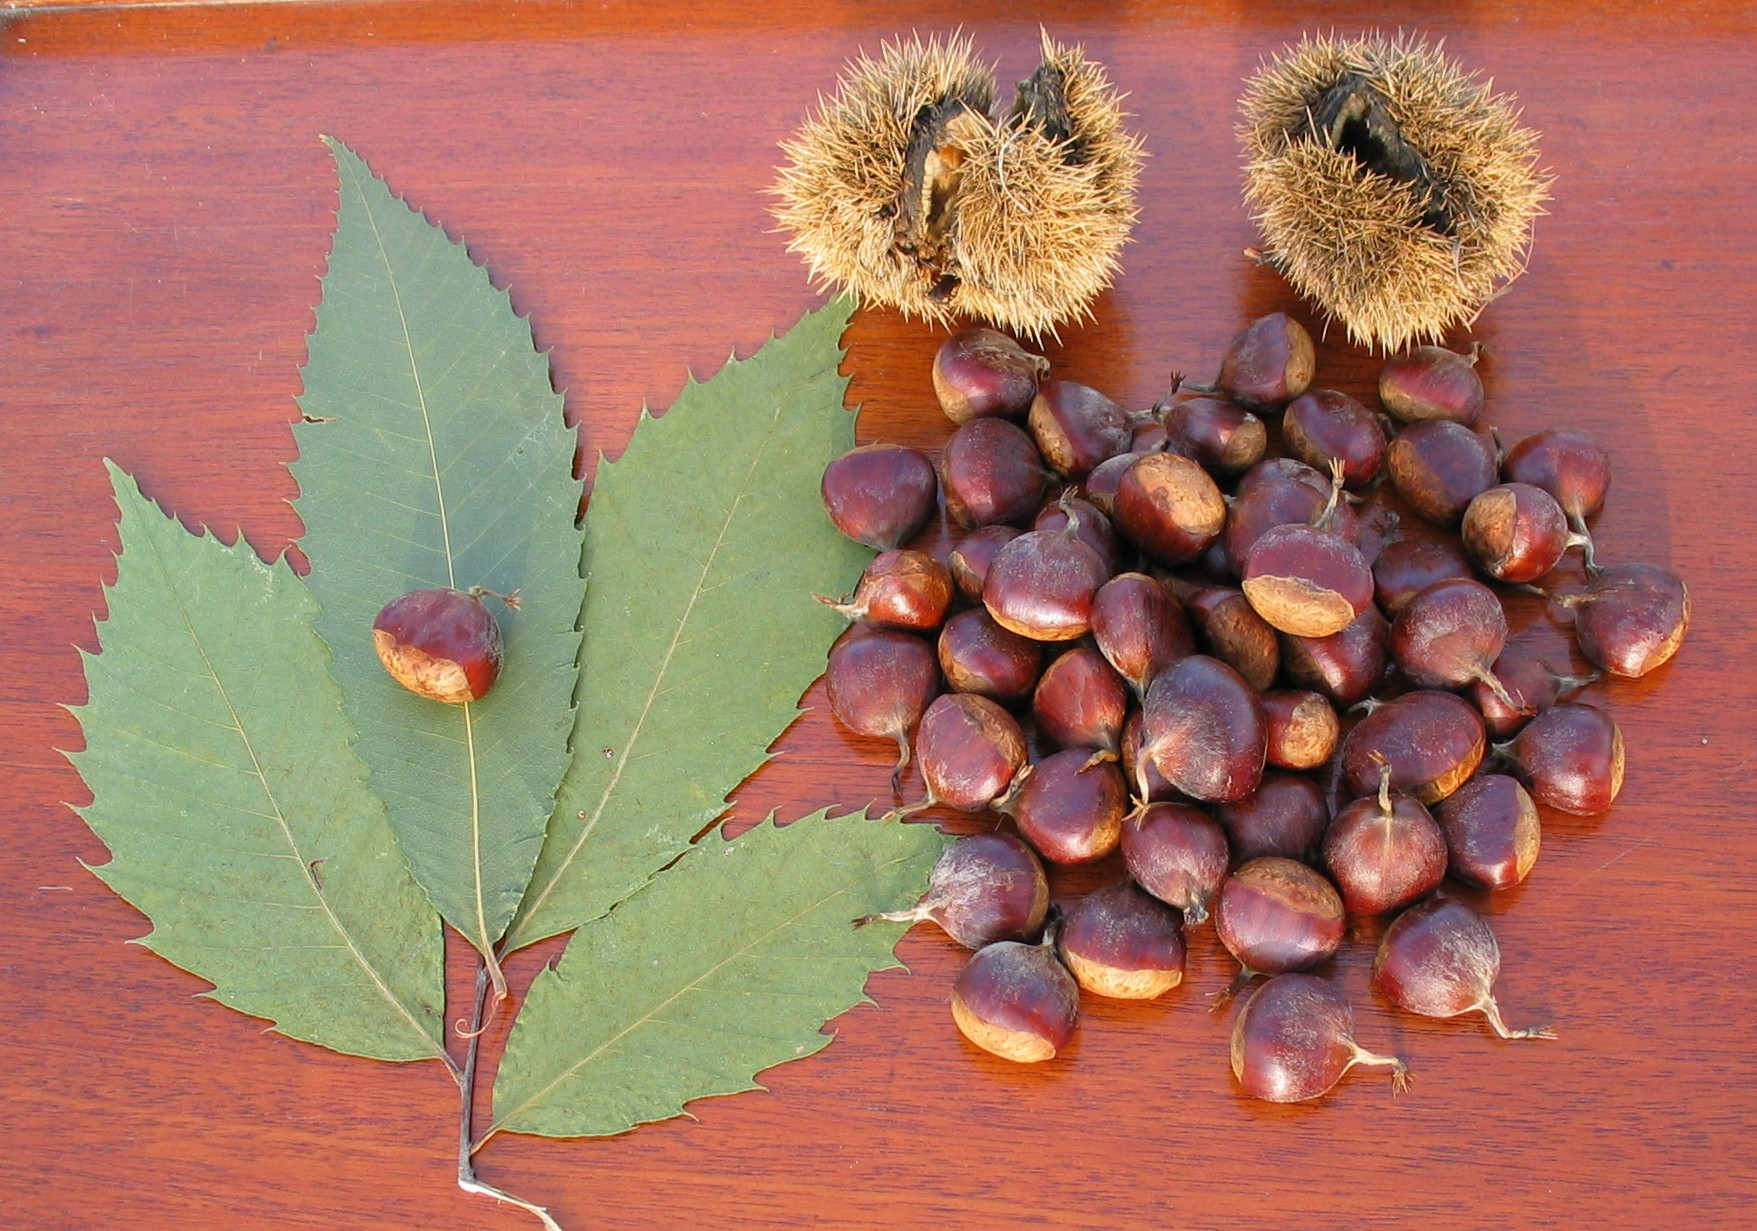 the great chestnut tree creative writing The american chestnut tree: where did it go  how great to see a story on the american chestnut it's such a sad, little known story  photo used under creative .